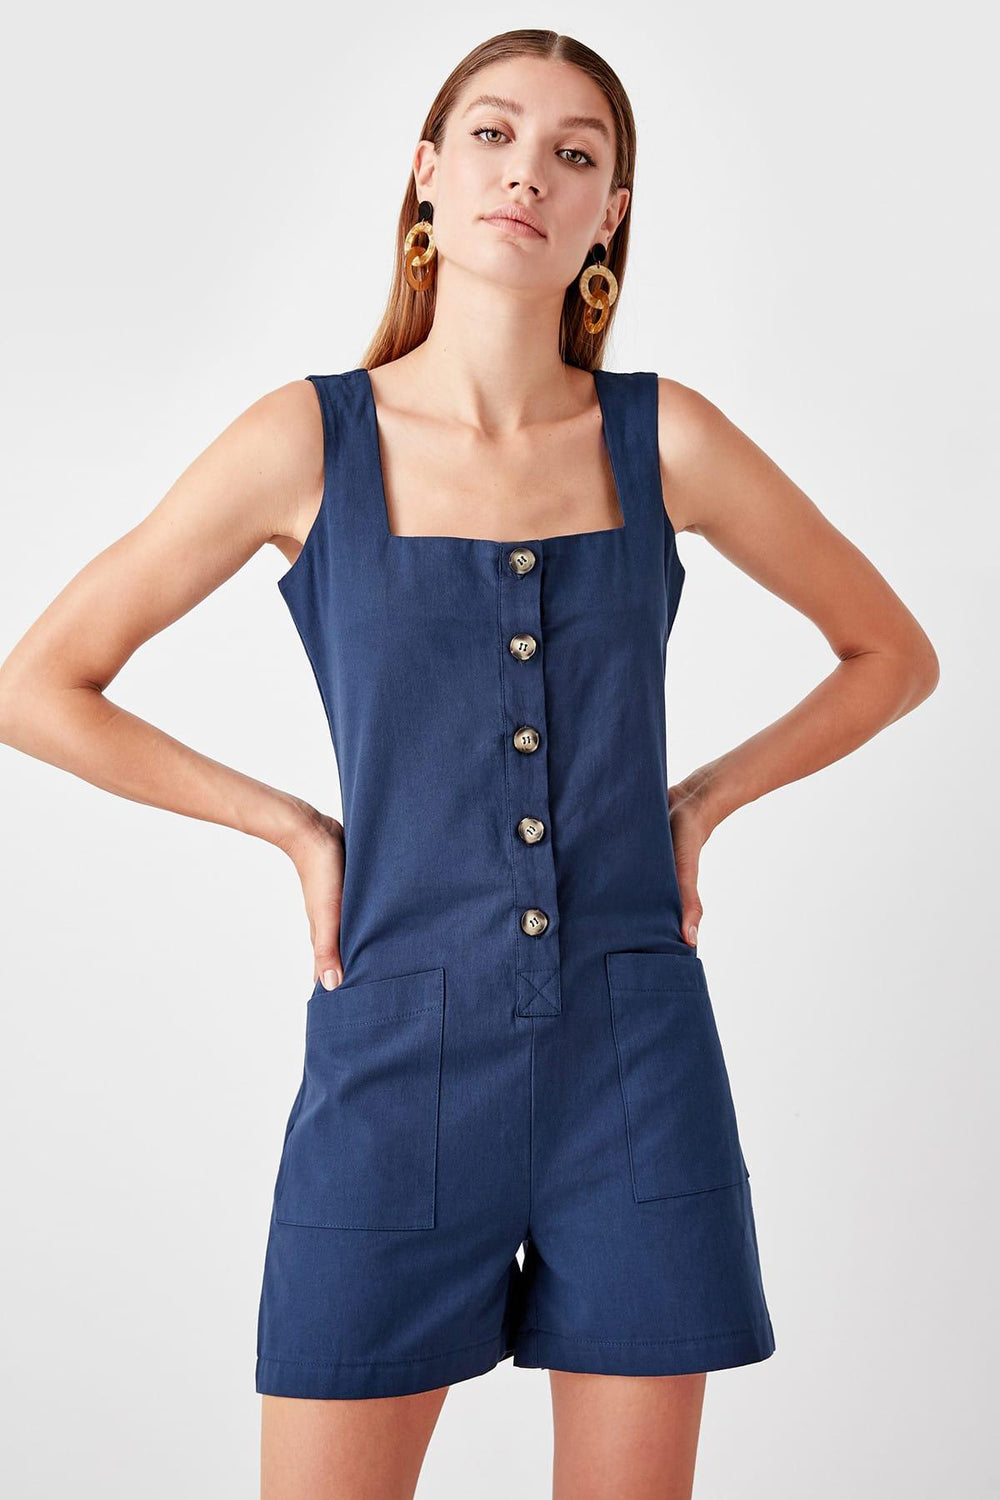 Miss Zut Miss Zut Navy Blue Button Jumpsuit Miss Zut &CO